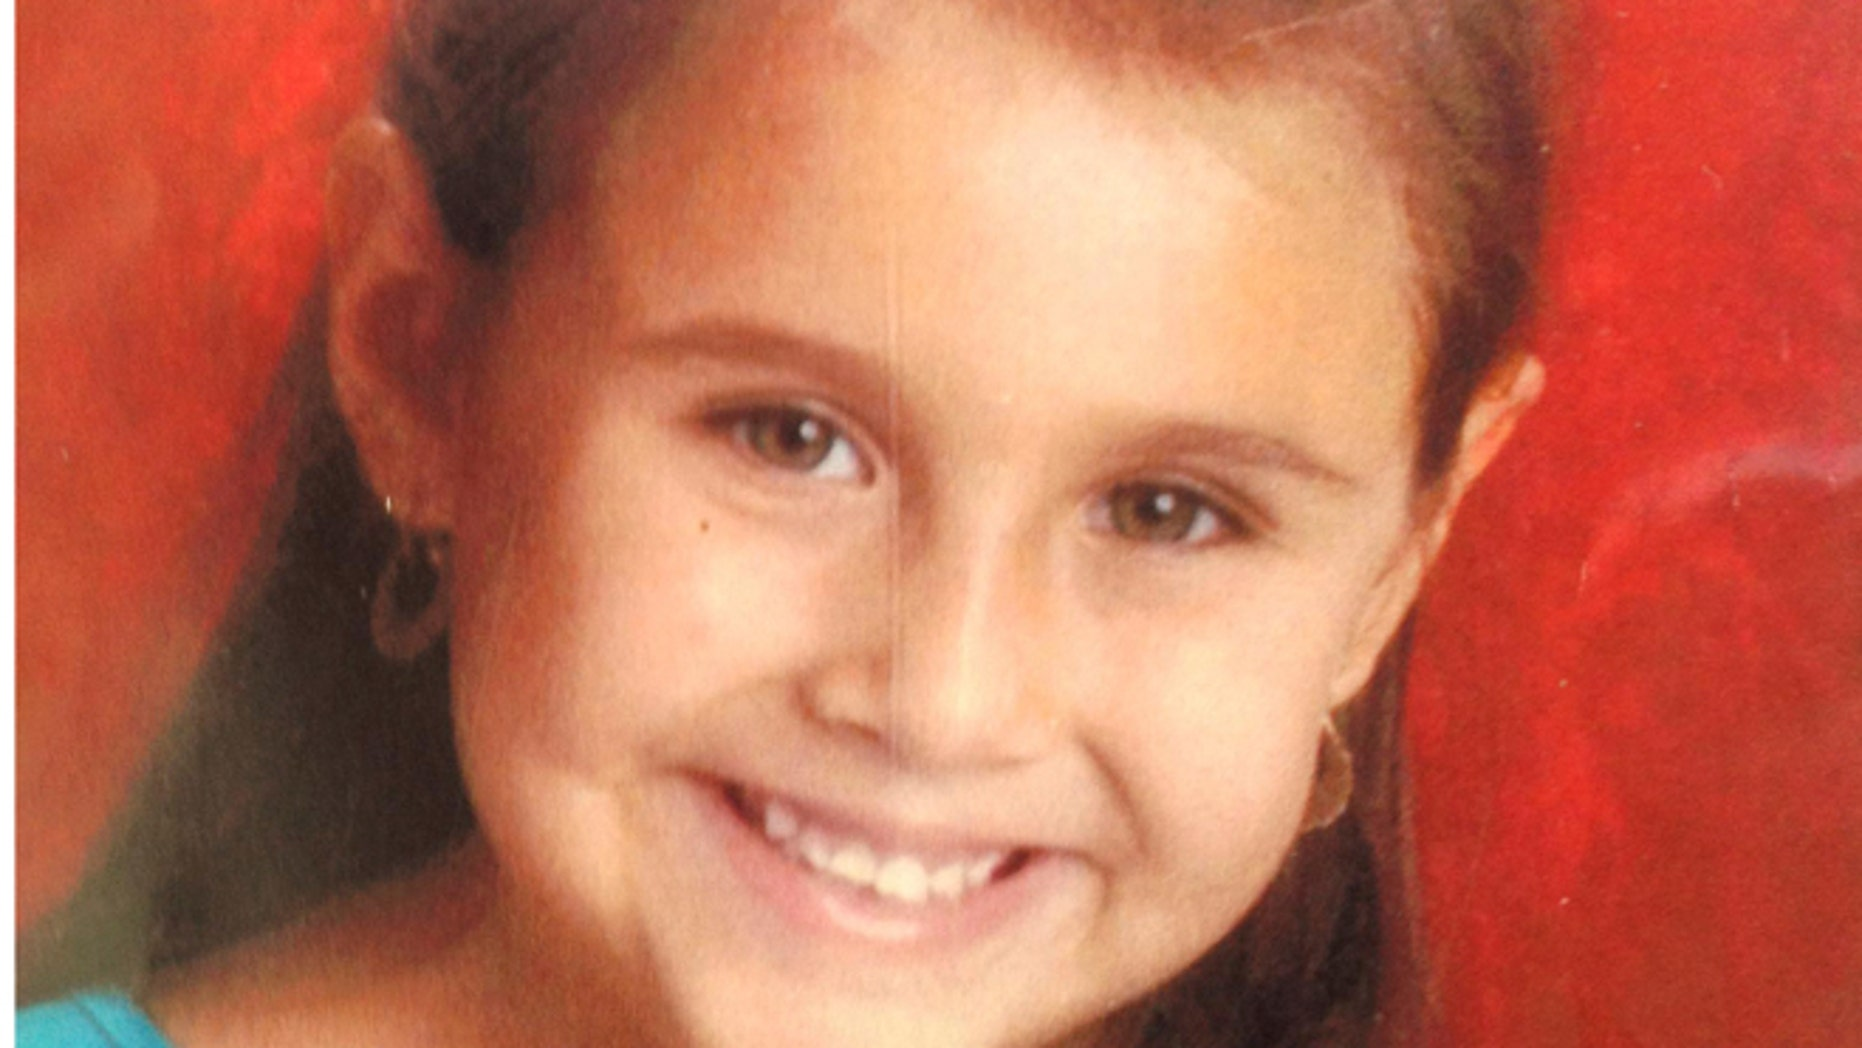 This undated file photo provided by the Tucson Police Department shows Isabel Mercedes Celis, 6, who has been missing since April 21, 2012 from he Tucson, Ariz., home.